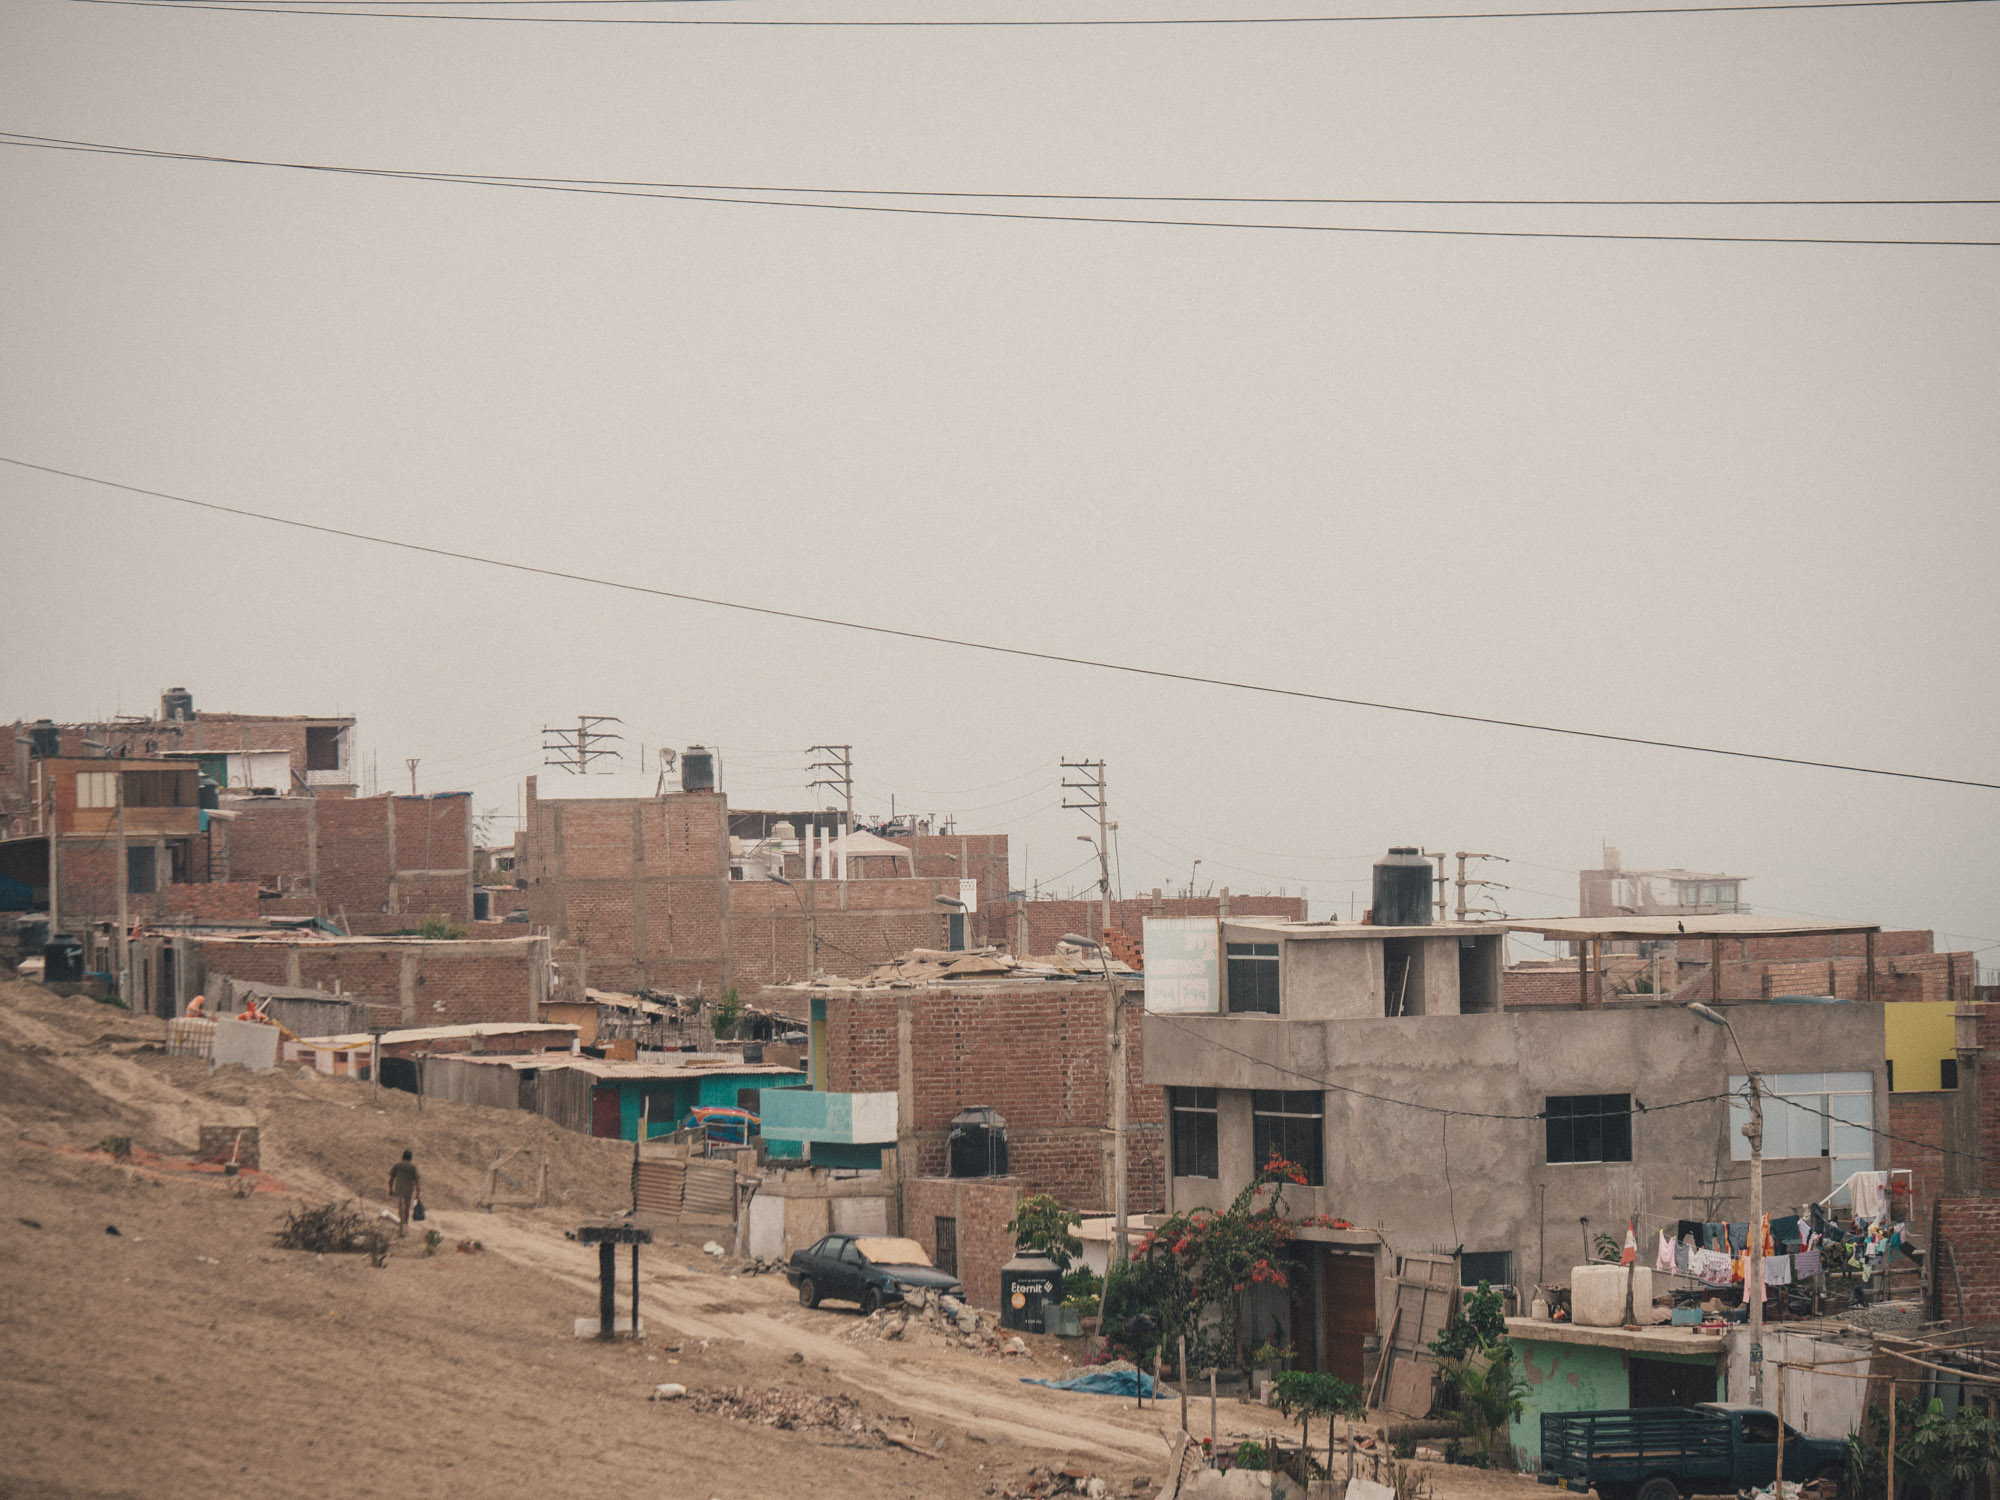 Many houses in Peru are unfinished to avoid paying property tax